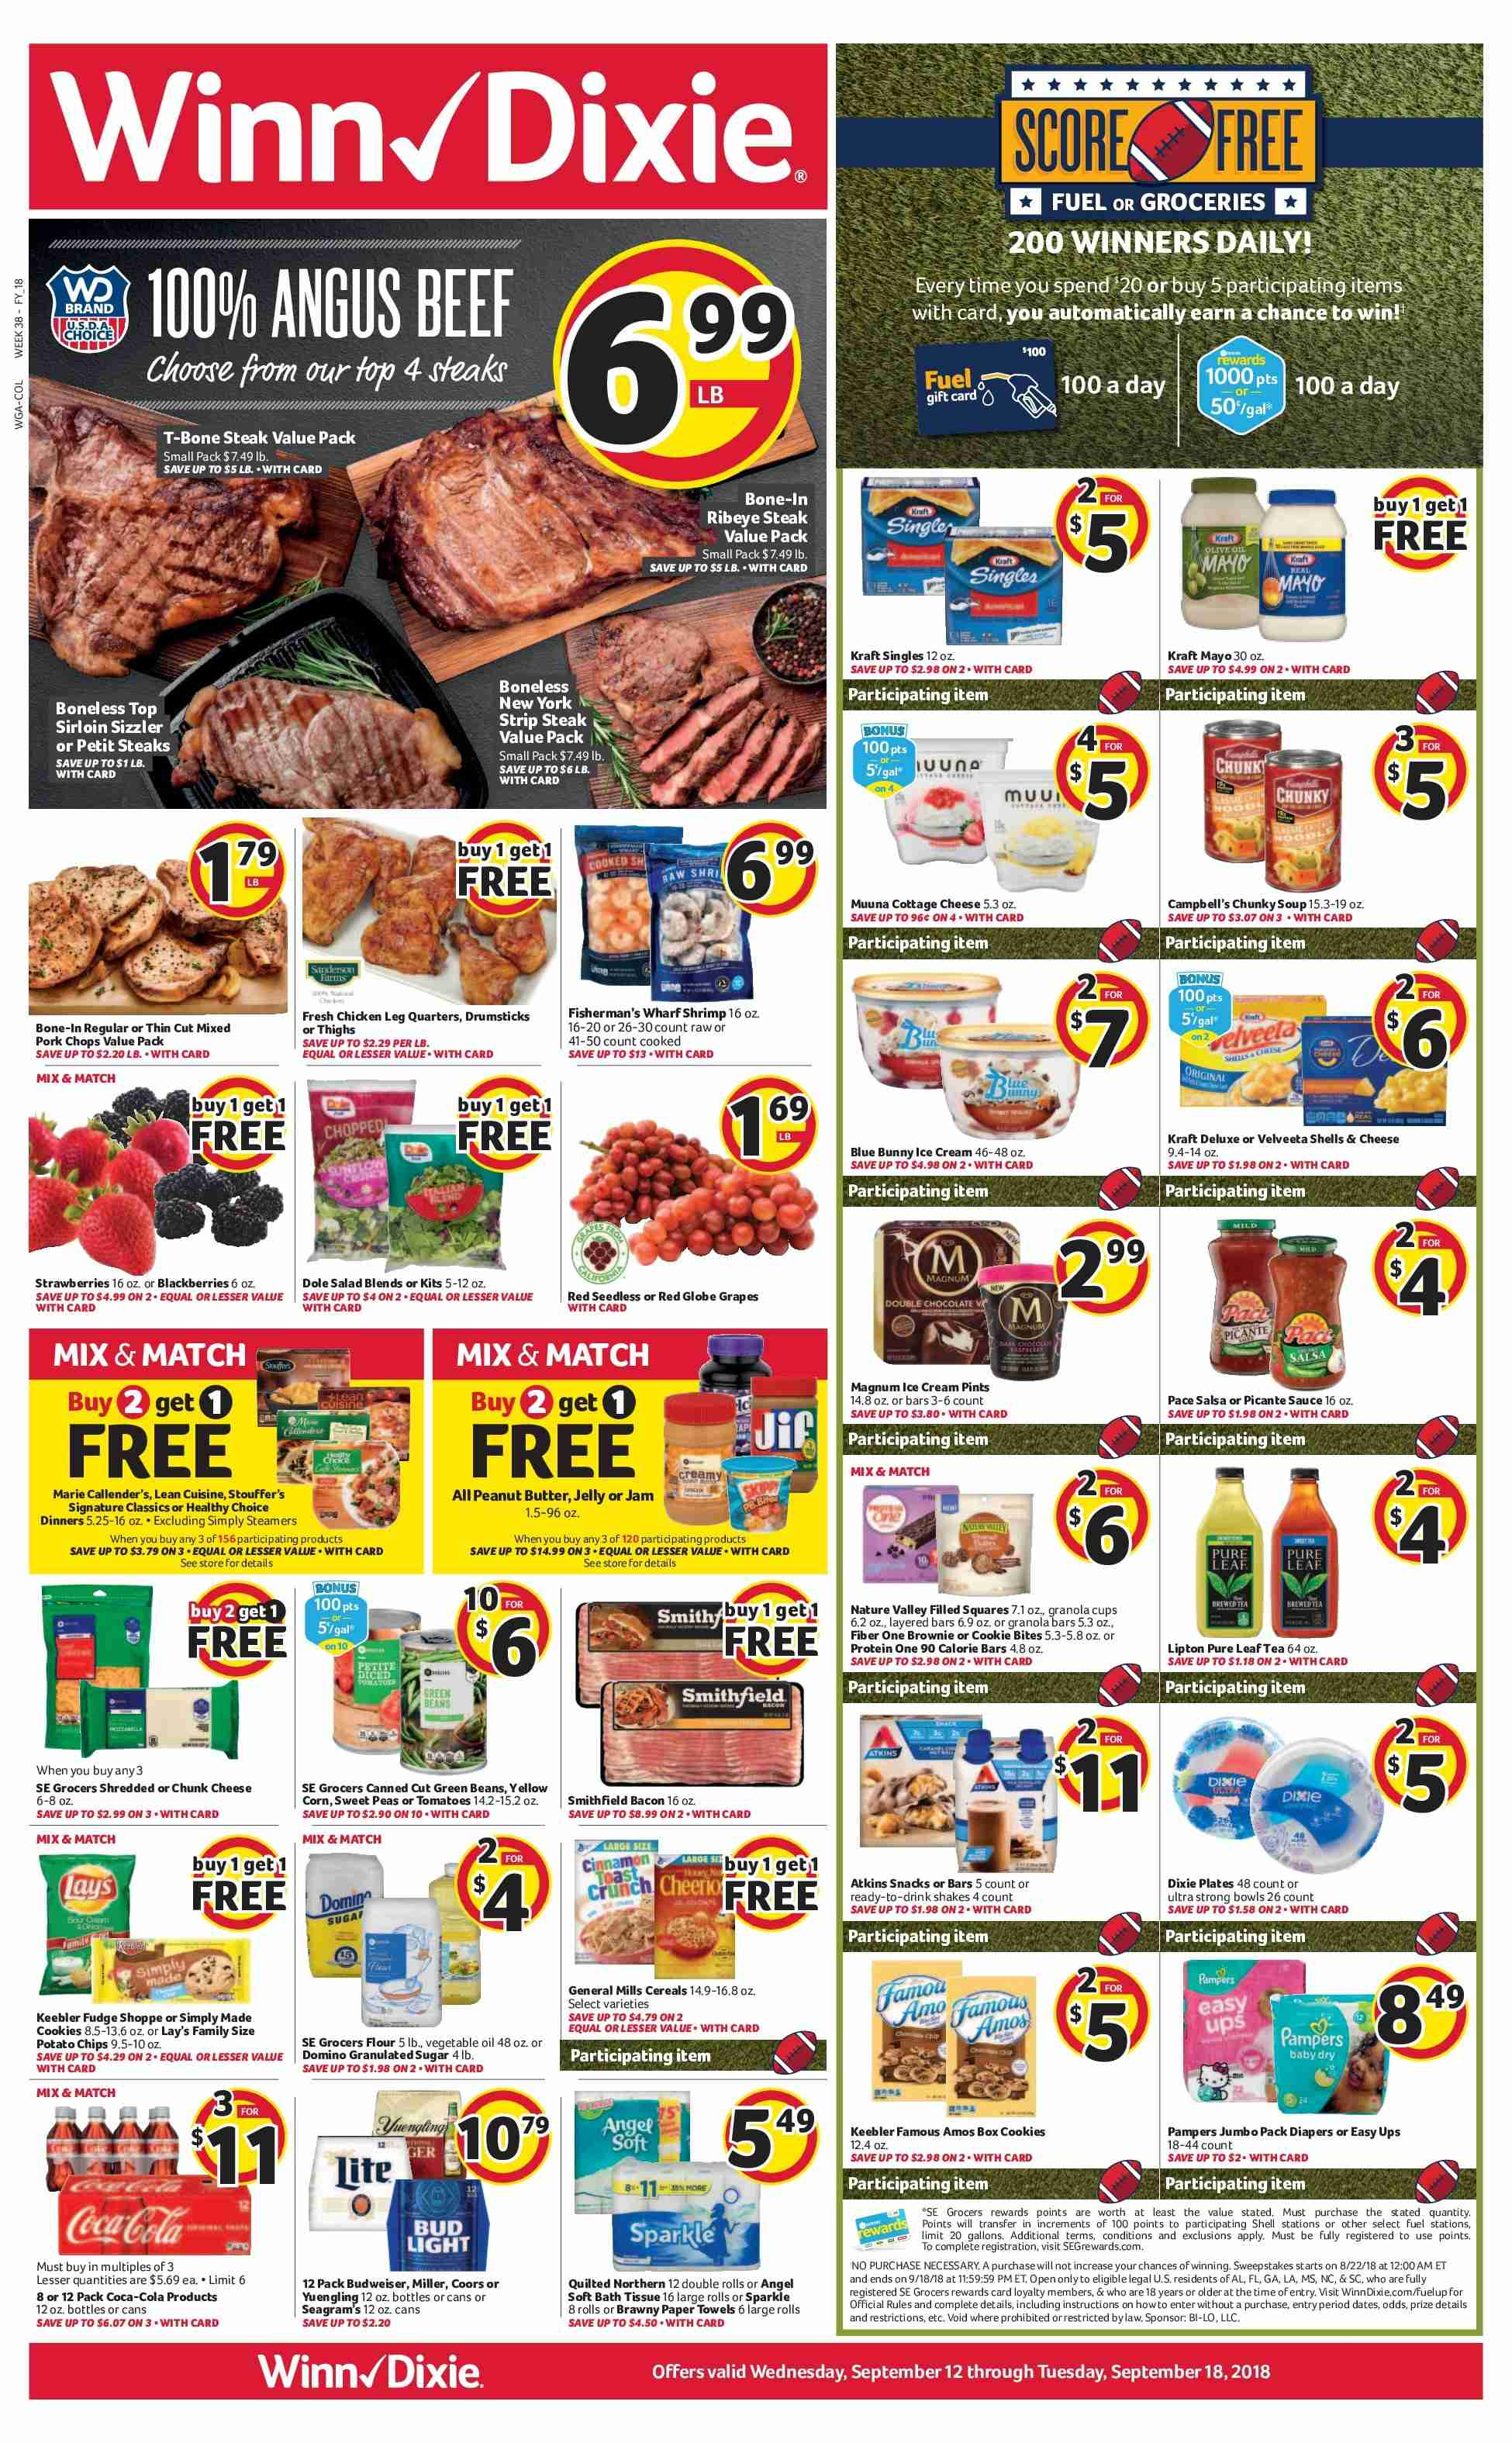 Winn Dixie Flyer - 09.12.2018 - 09.18.2018 - Sales products - Bud Light, green beans, grapes, red globe grapes, rolls, beef meat, pork chops, pork meat, shrimps, bacon, cheese, jelly, salsa, sauce, Magnum, ice cream, beans, cookies, snack, Lay's, cereals, granola, vegetable oil, jam, peanut butter, Coca-Cola, paper towel, Quilted Northern, protein. Page 1.